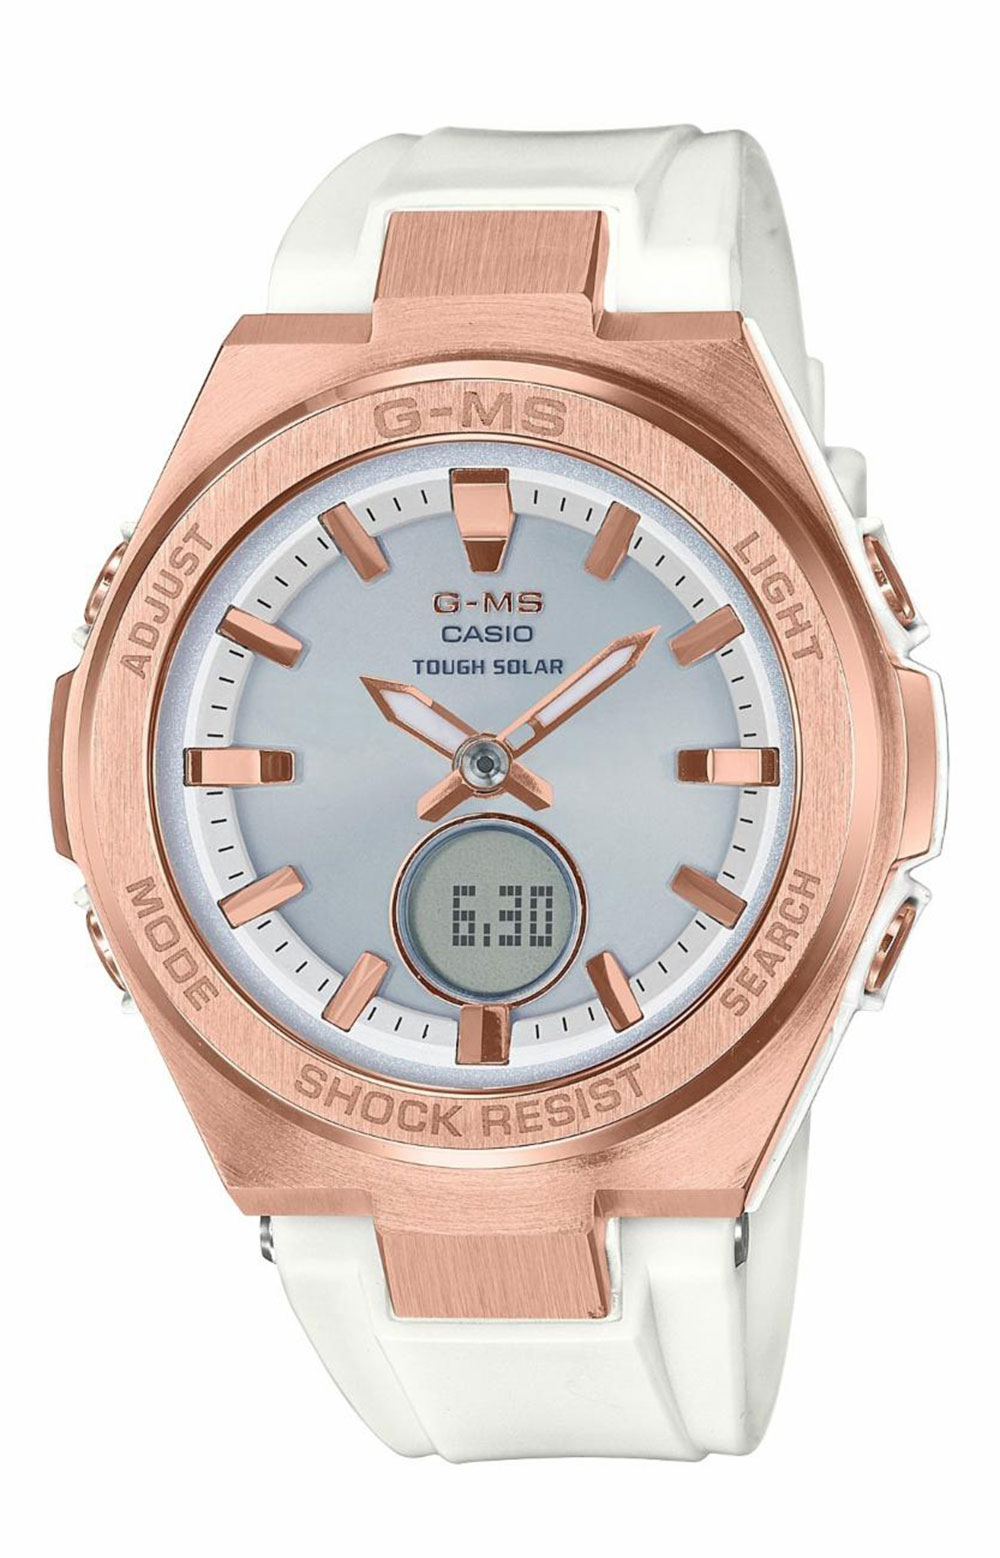 MSGS200G-7A Watch - White/Rose Gold